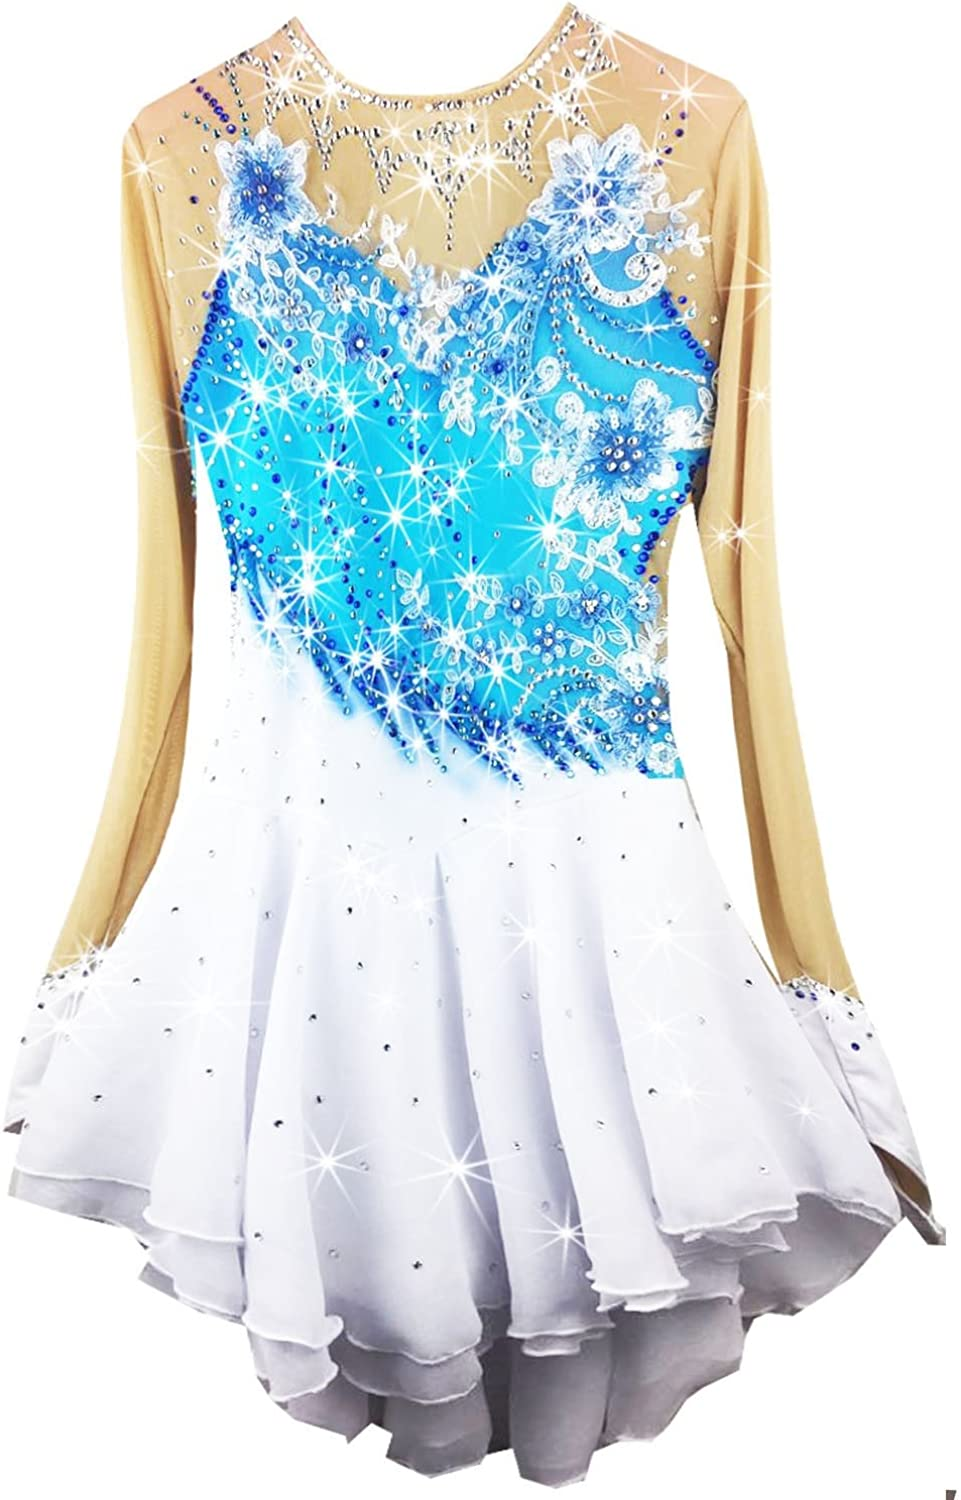 Heart&M Hand Painting Ice Skating Dress for Girls Womens Figure Skating Competition Costume Long Sleeved Skating Dress bluee White